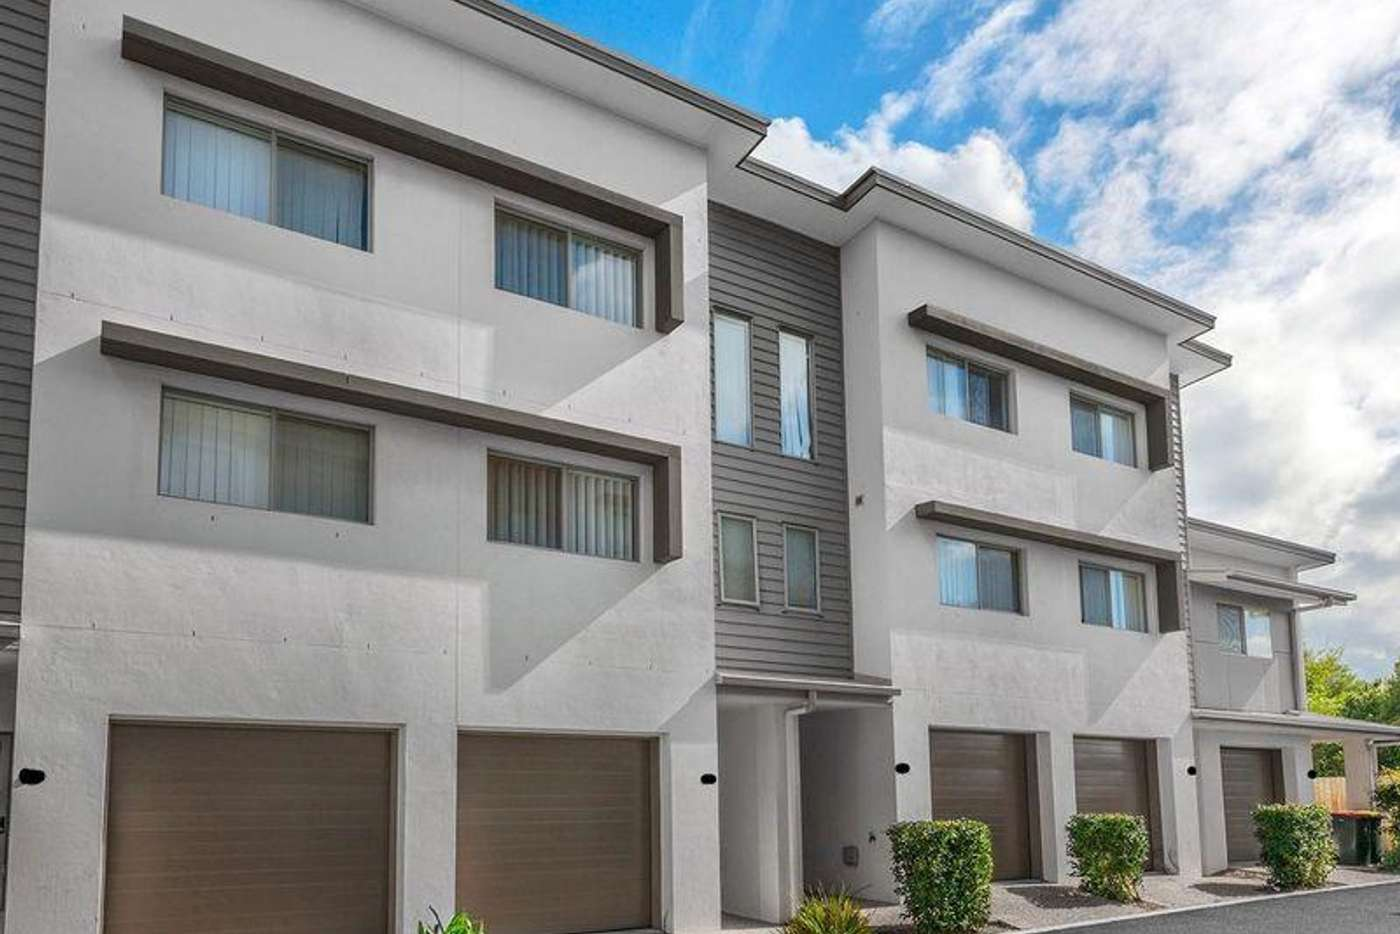 Main view of Homely townhouse listing, 199/10 Radiant Street, Taigum QLD 4018